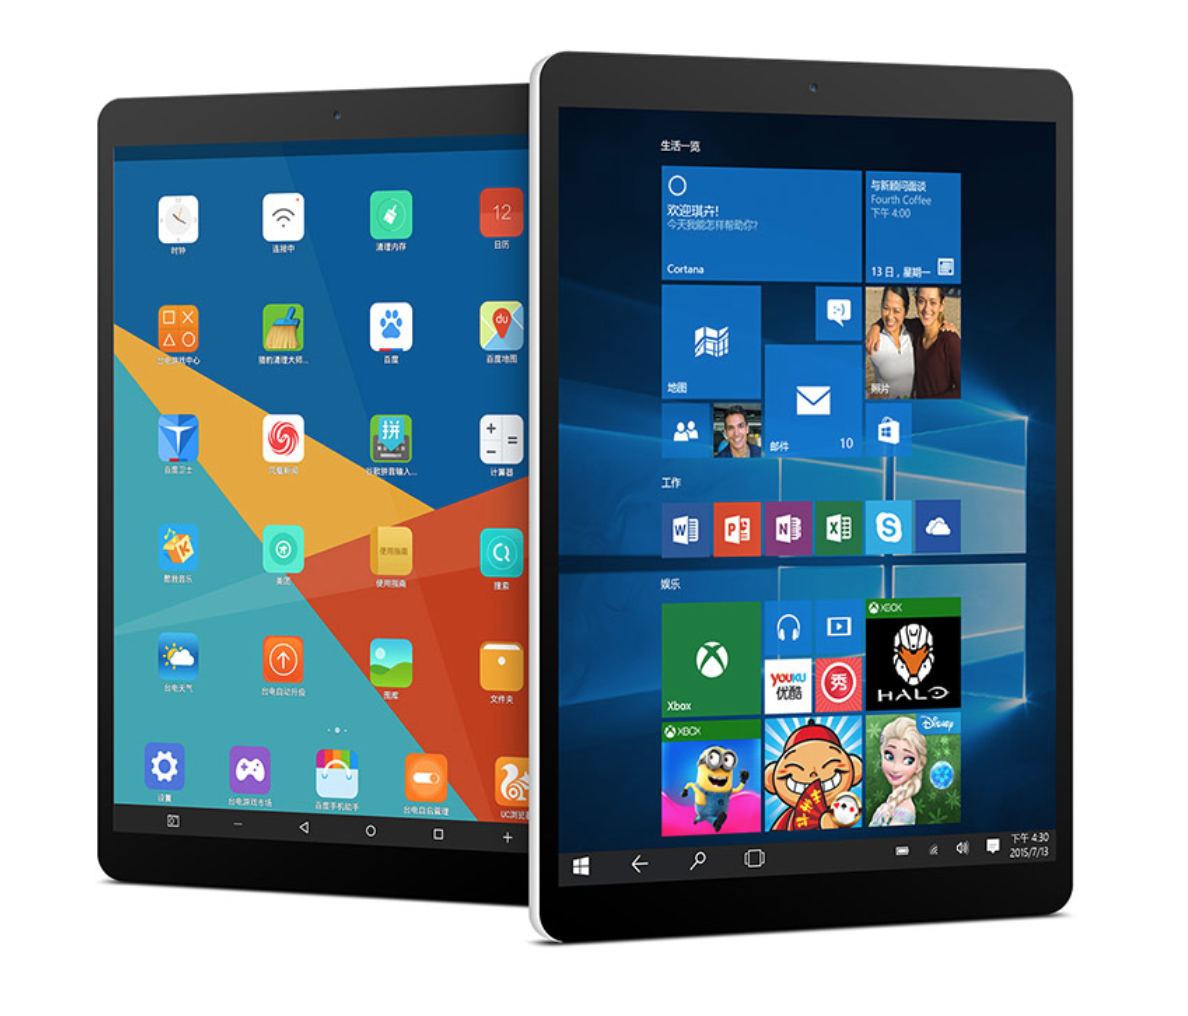 Teclast X89 Kindow E-book Reader 7.5 inch Dual OS Windows 10 & Android 4.4Intel Bay Trail Z3735F 2G + 32G Quad Core Tablet PC vido w8c intel z3735f quad core 1 3ghz 8 inch ips dual boot tablet